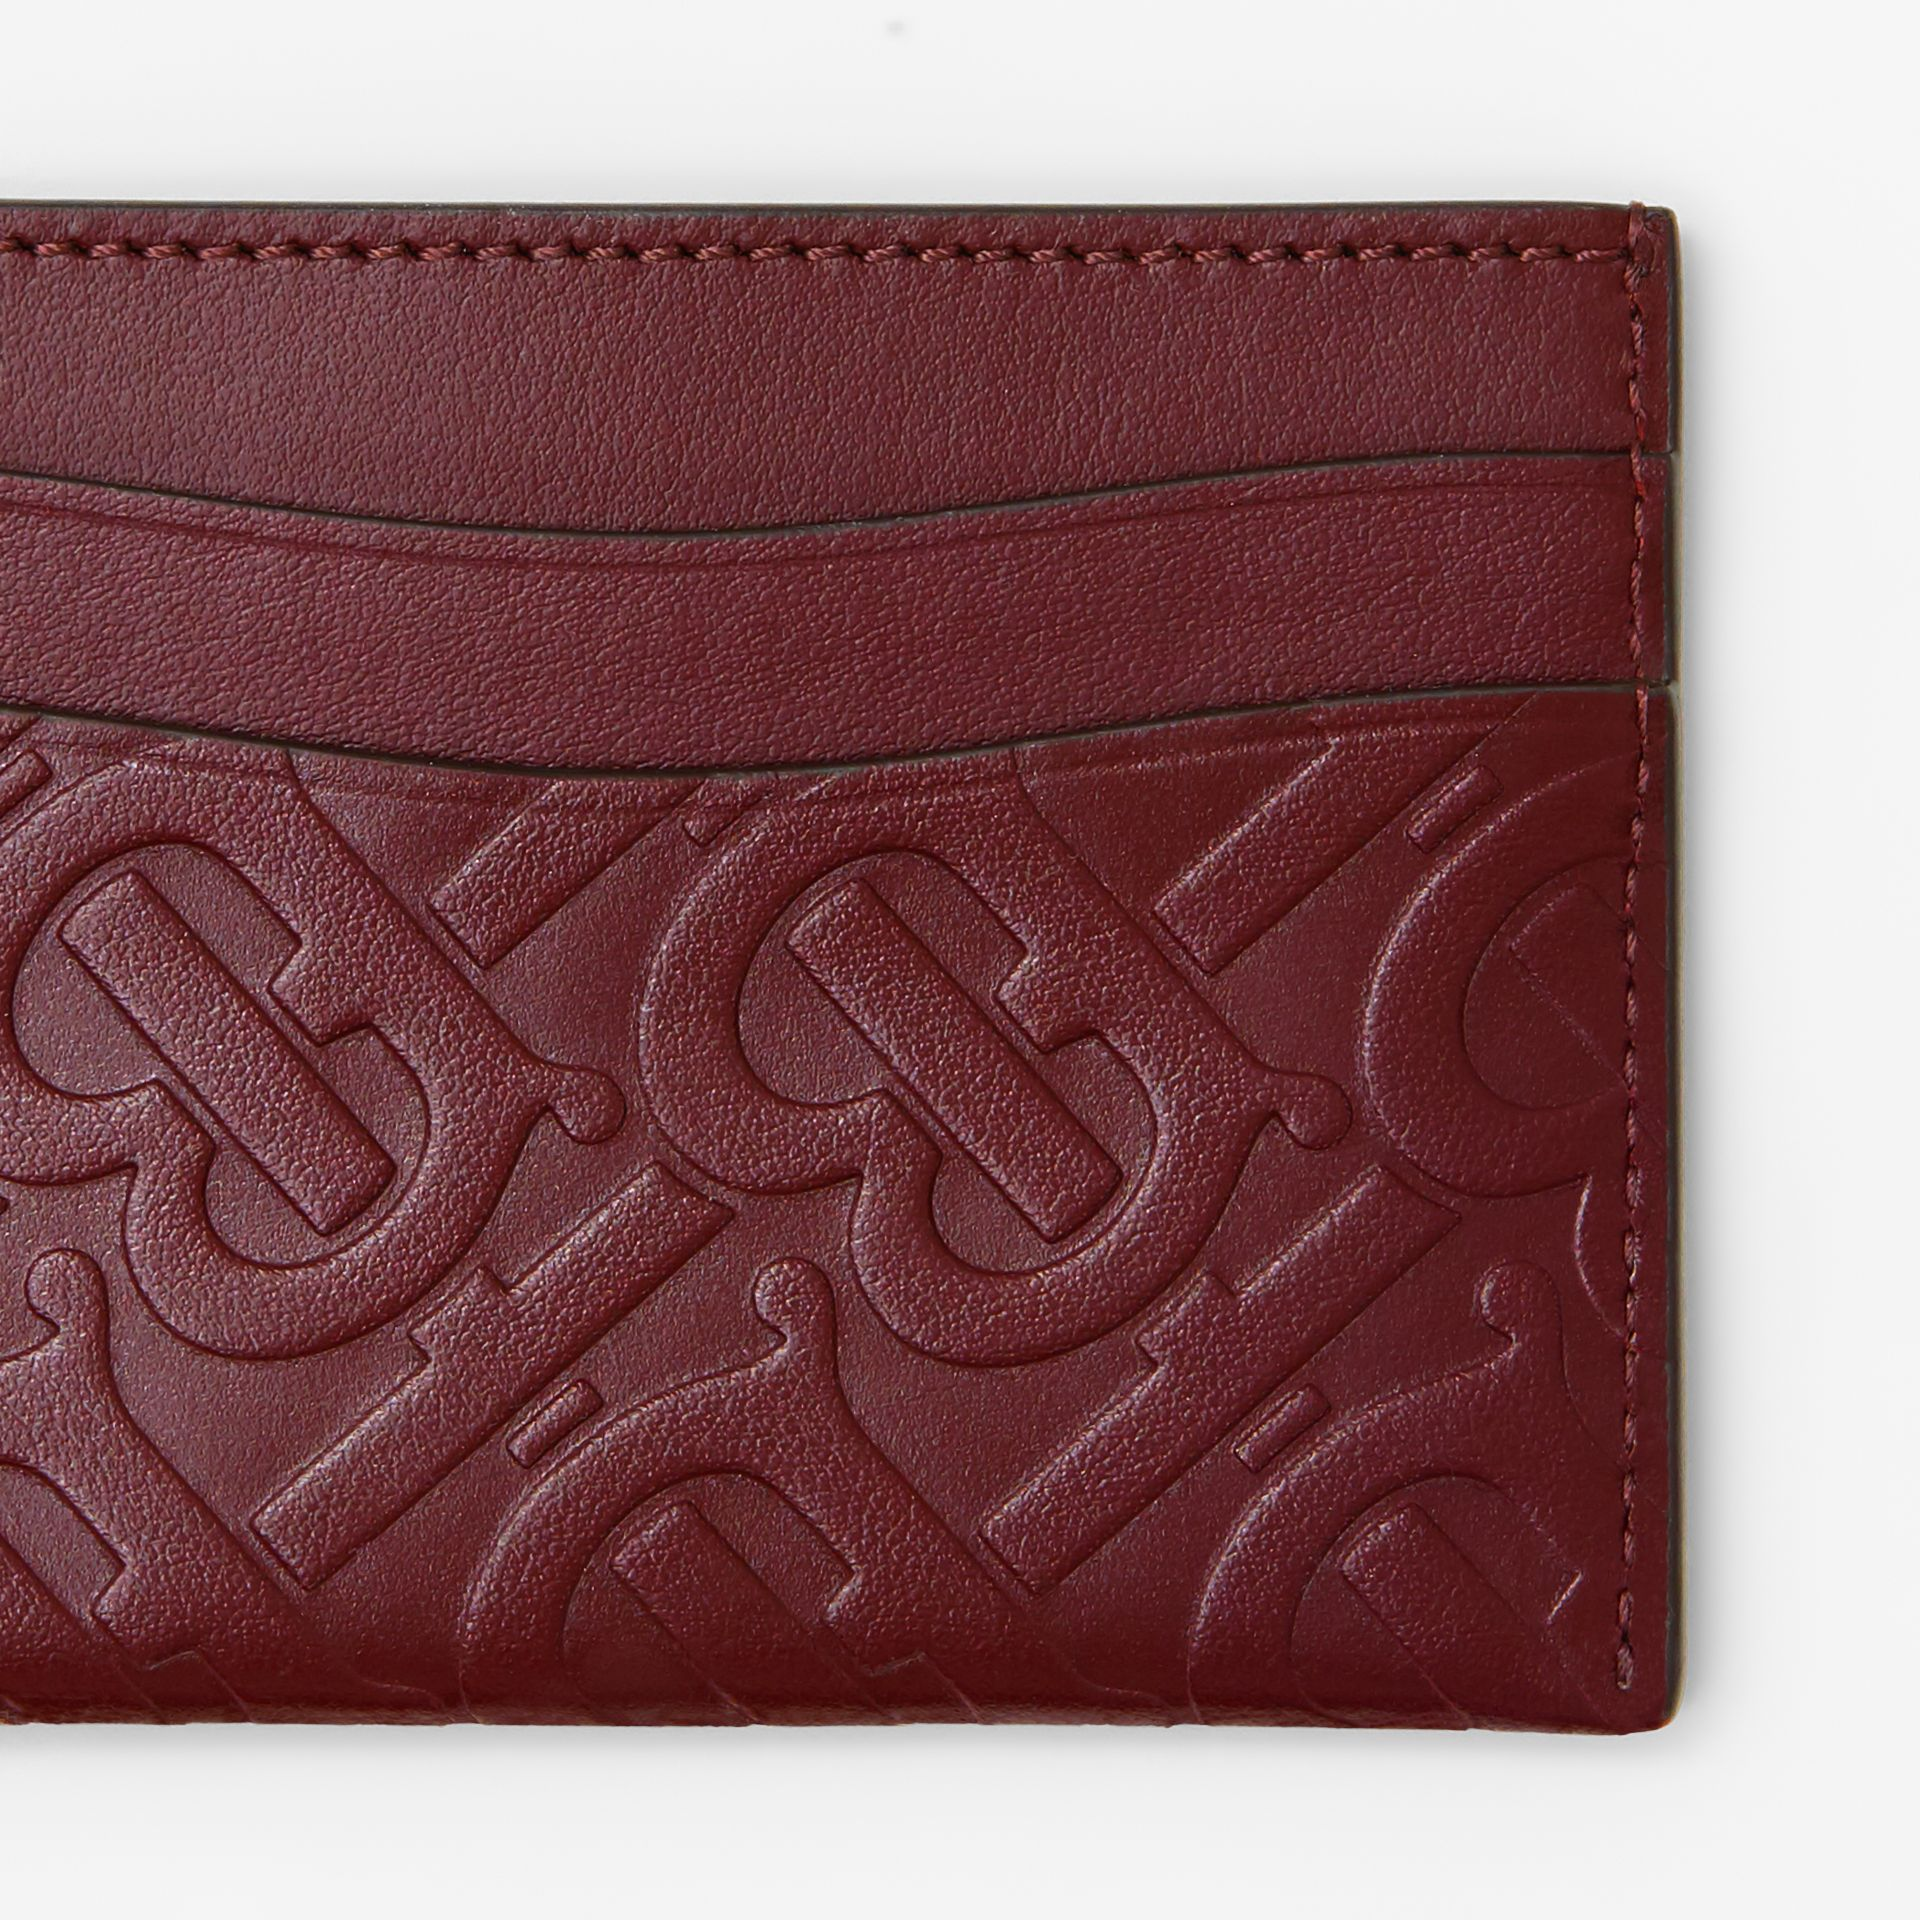 Porte-cartes en cuir Monogram (Oxblood) - Femme | Burberry - photo de la galerie 1